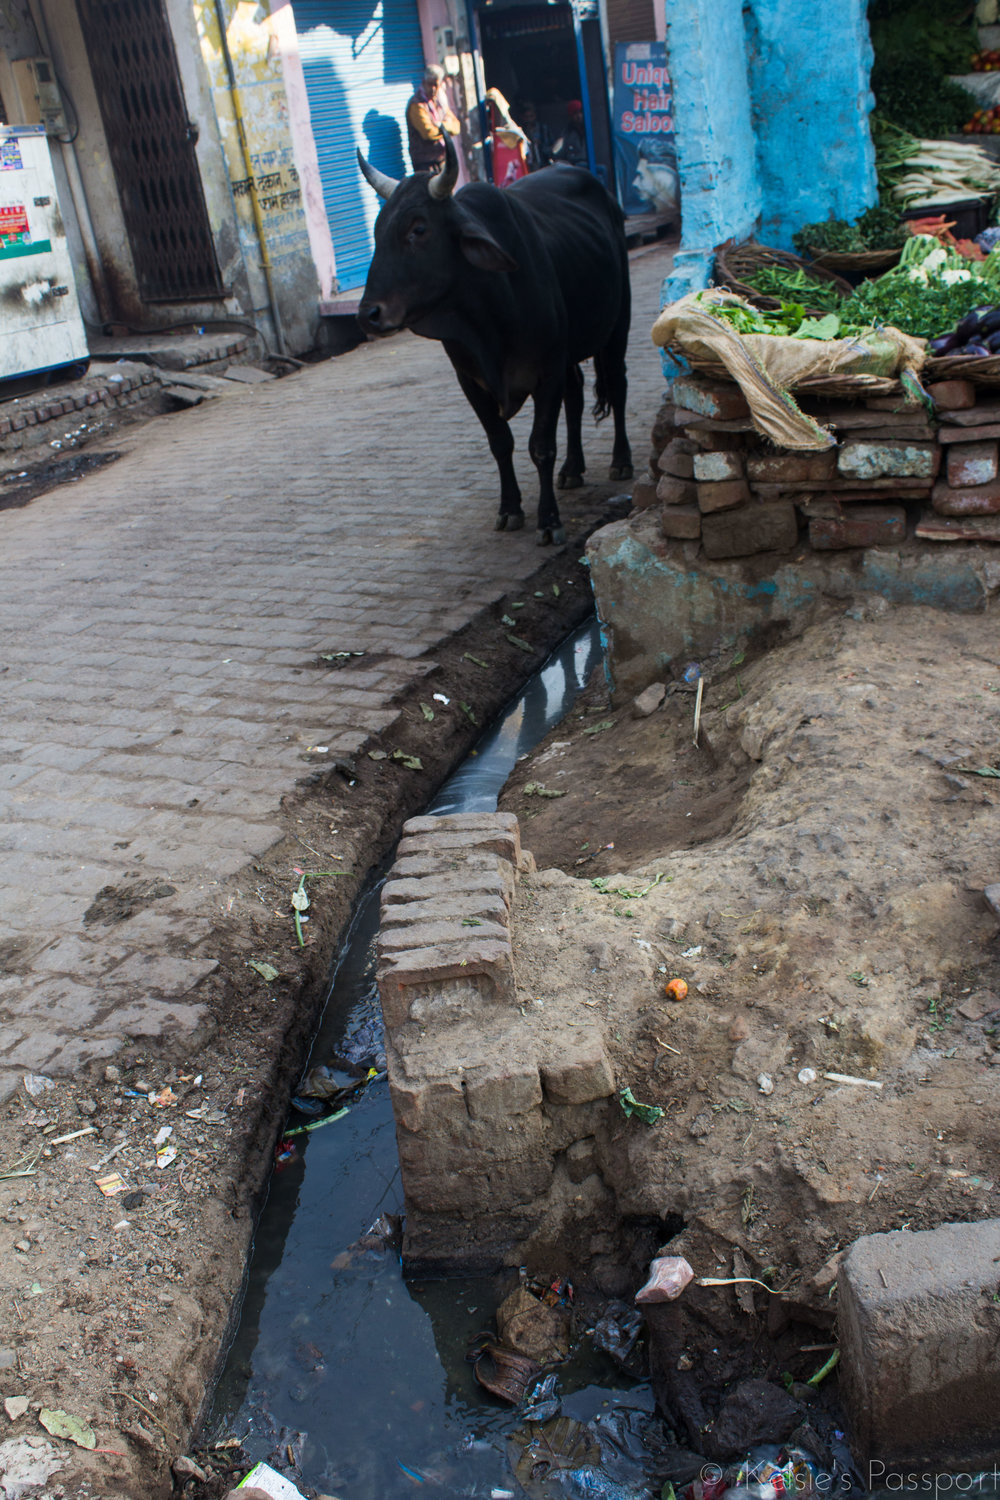 Water from the neighbourhood homes runs down the streets. The cows drink it.